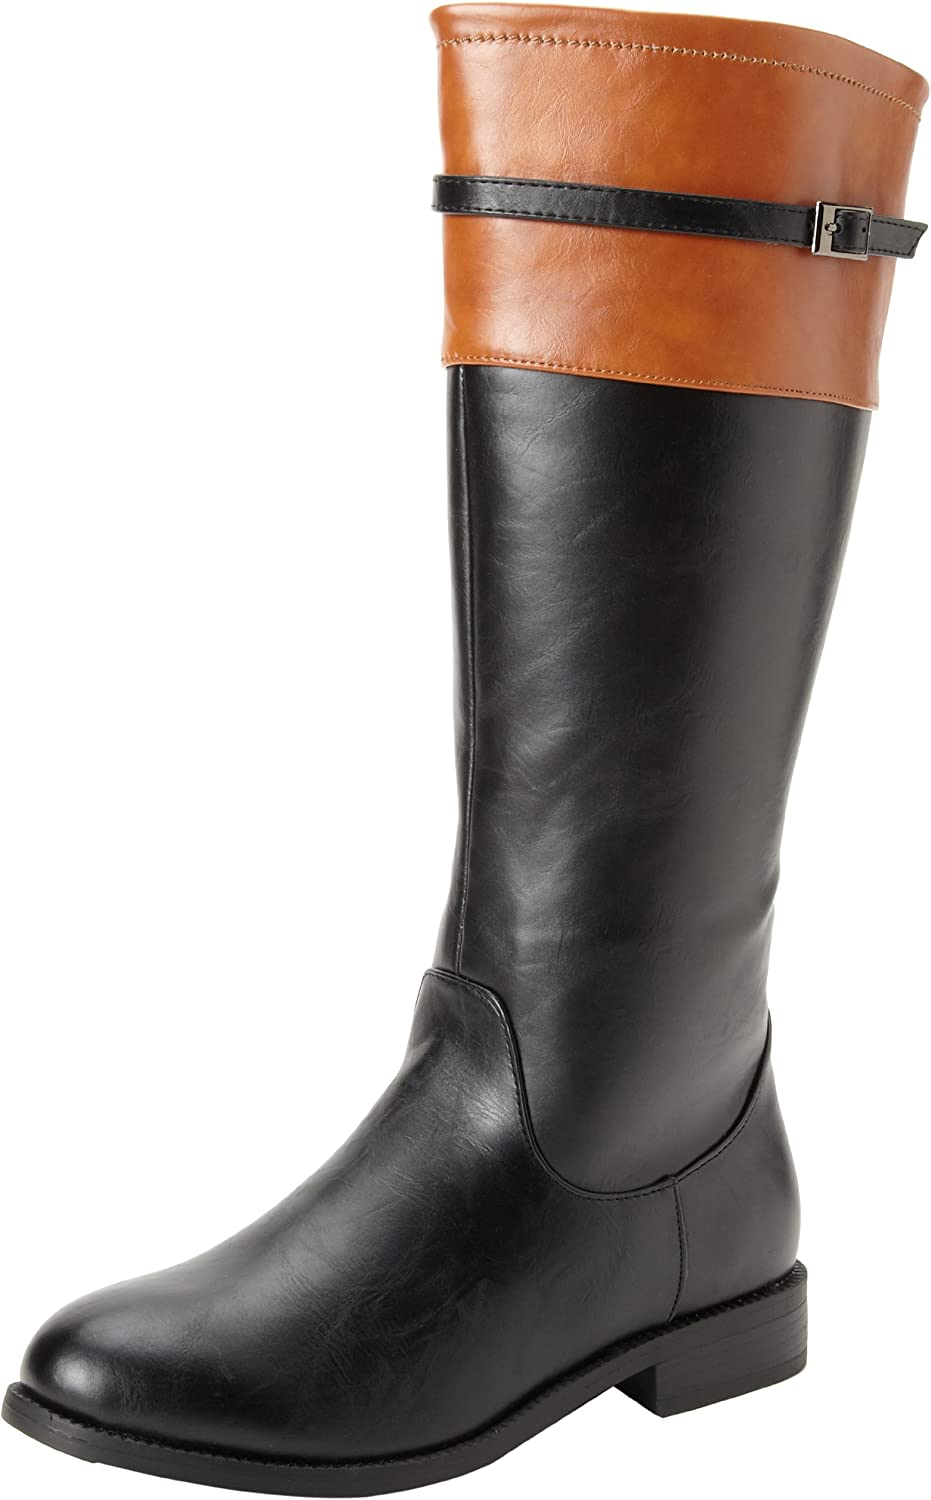 Wanted shoes Women's Slicker Knee-High Boot